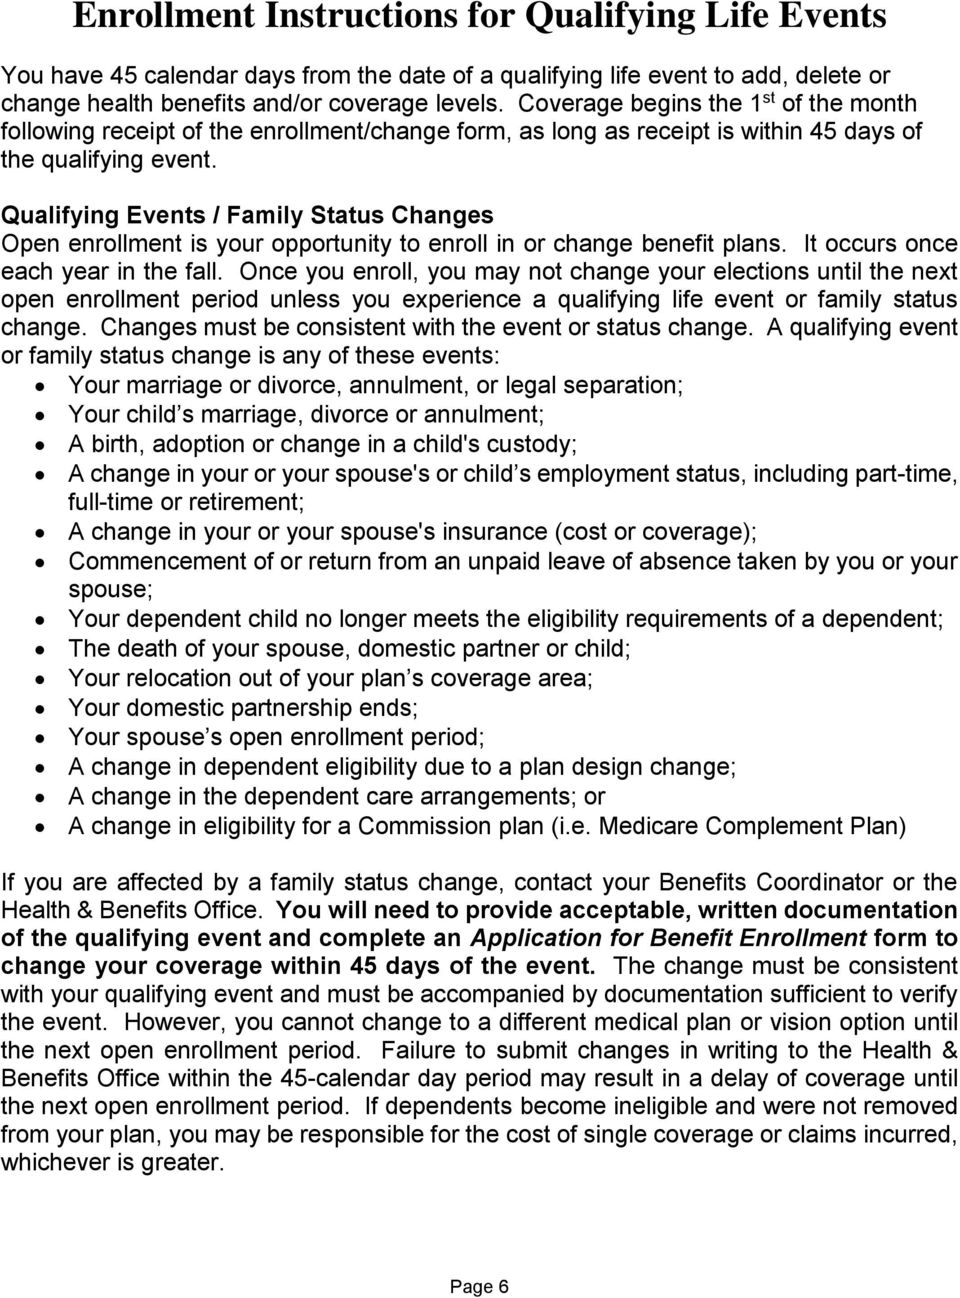 Qualifying Events / Family Status Changes Open enrollment is your opportunity to enroll in or change benefit plans. It occurs once each year in the fall.